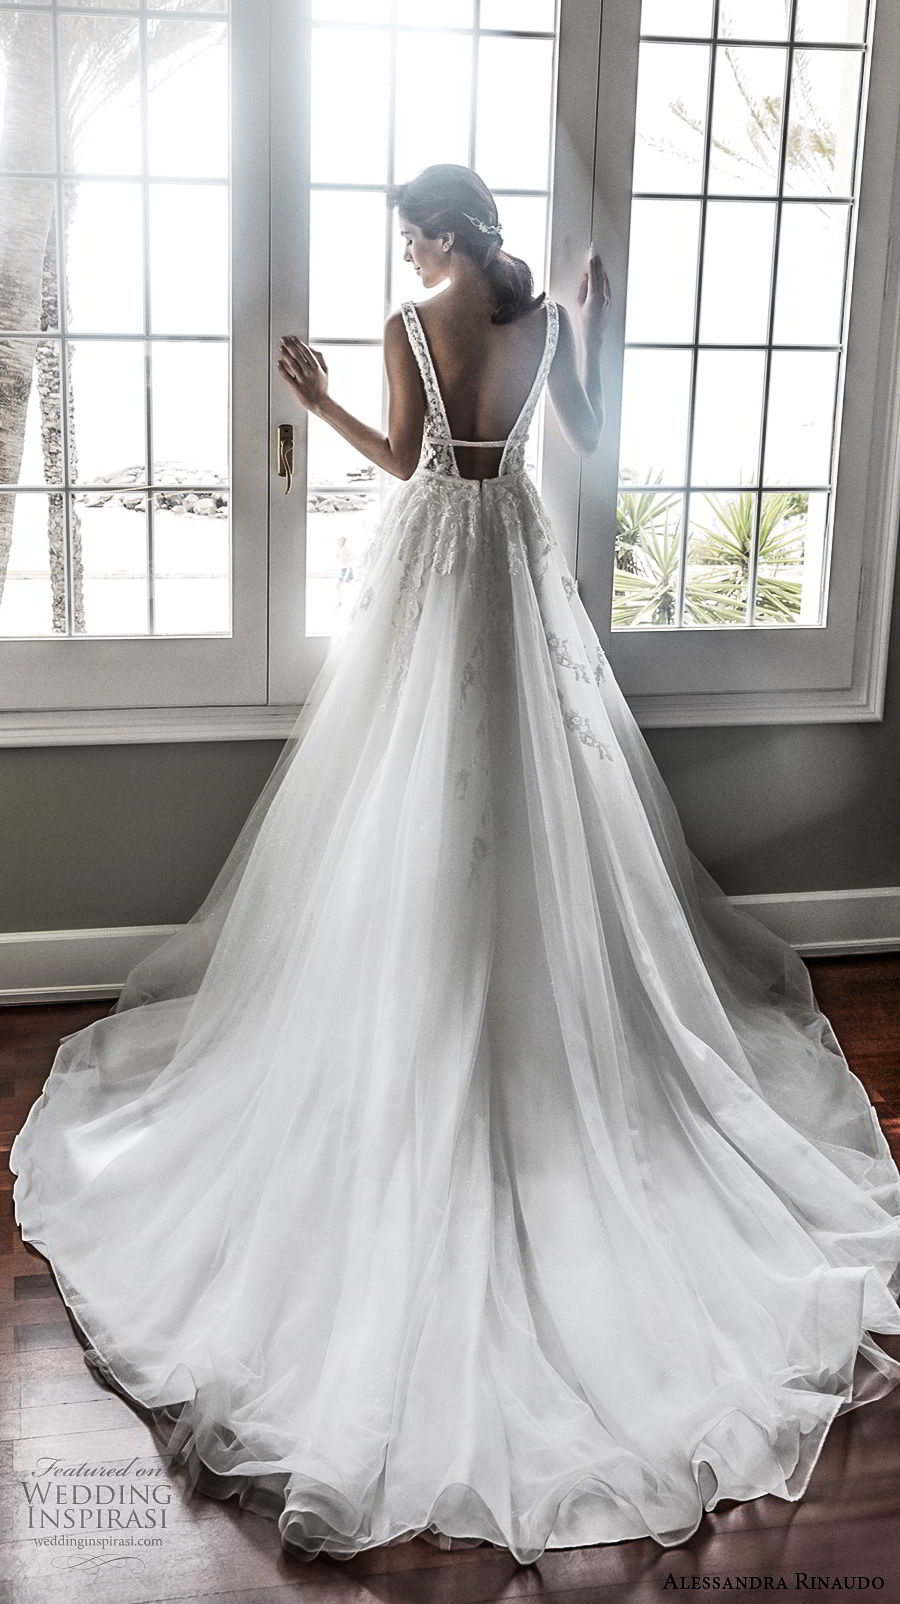 alessandra rinaudo 2018 bridal sleeveless deep v neckline heavily embellished bodice elegant romantic a line wedding dress open low back chapel train (35) bv